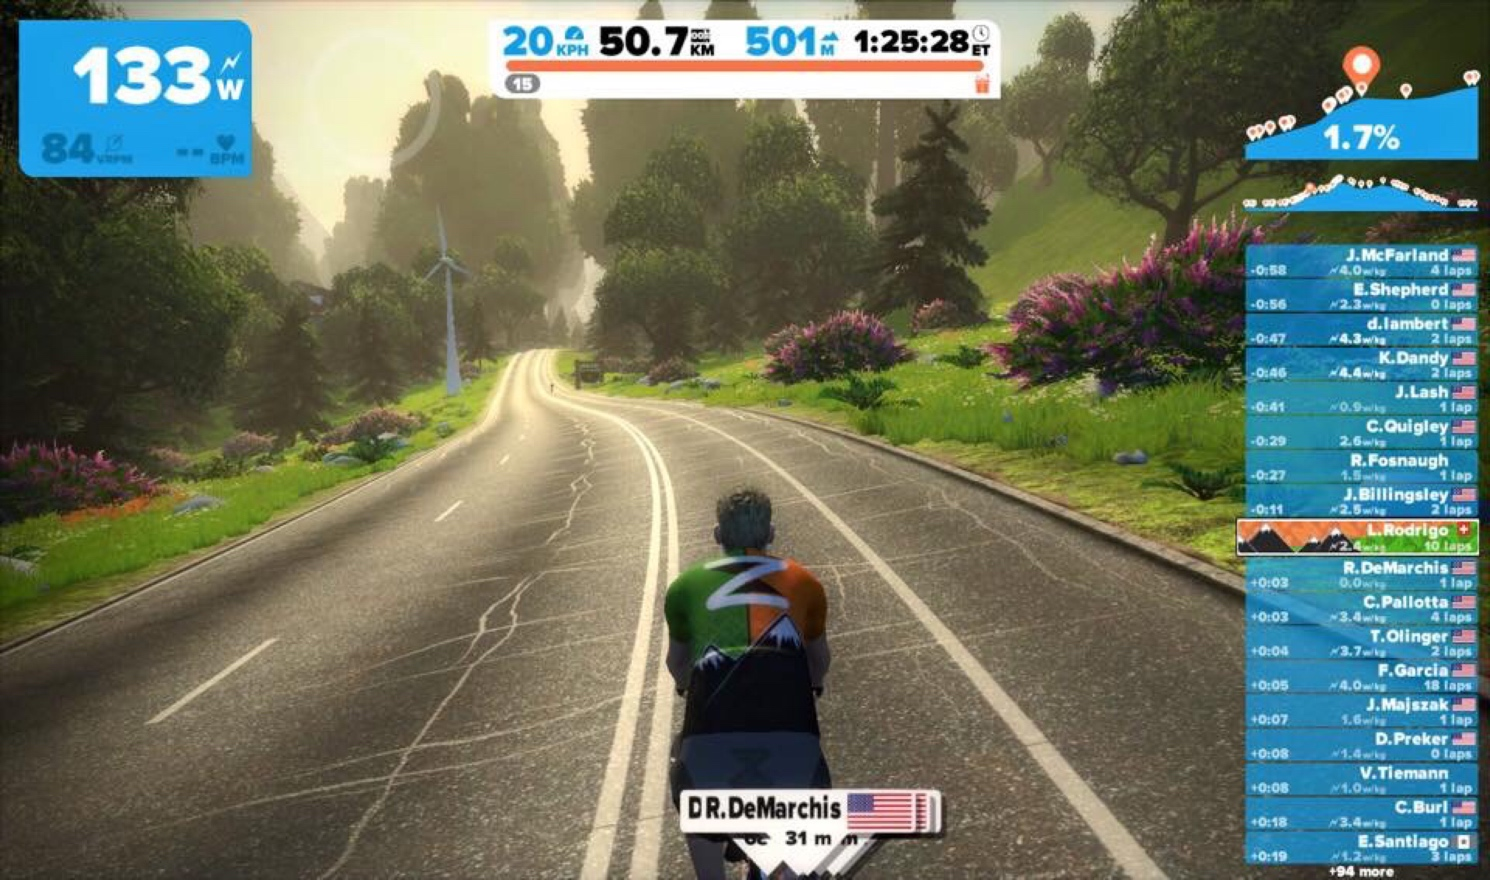 TitaniumGeek Zwift three Jersey Zwift User Manual   The Unofficial Guide to Zwift! Cycling Zwift  Zwift phone app Zwift manual Zwift user manual updates manual ios Gear cycling android   Image of Zwift three Jersey